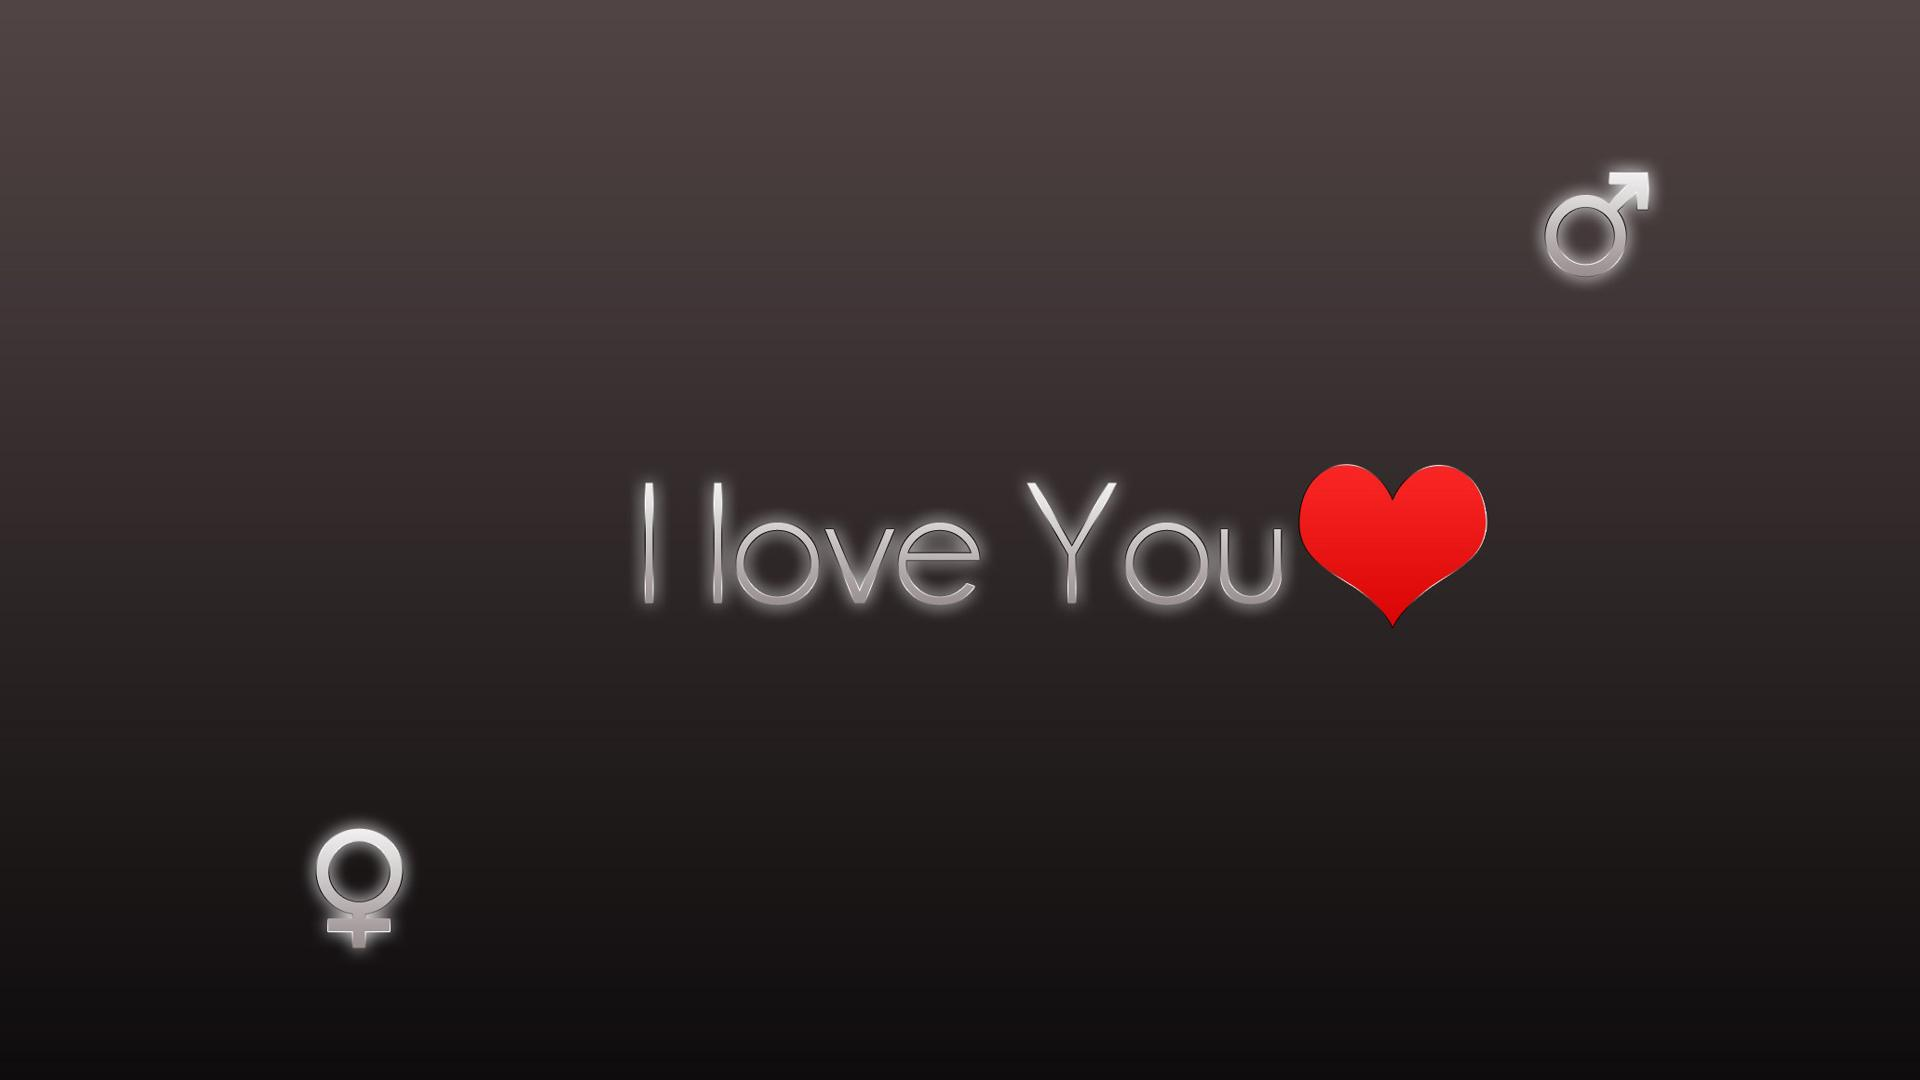 Love Wallpaper With Quotes For Mobile : I Love You Wallpapers With Quotes - Wallpaper cave